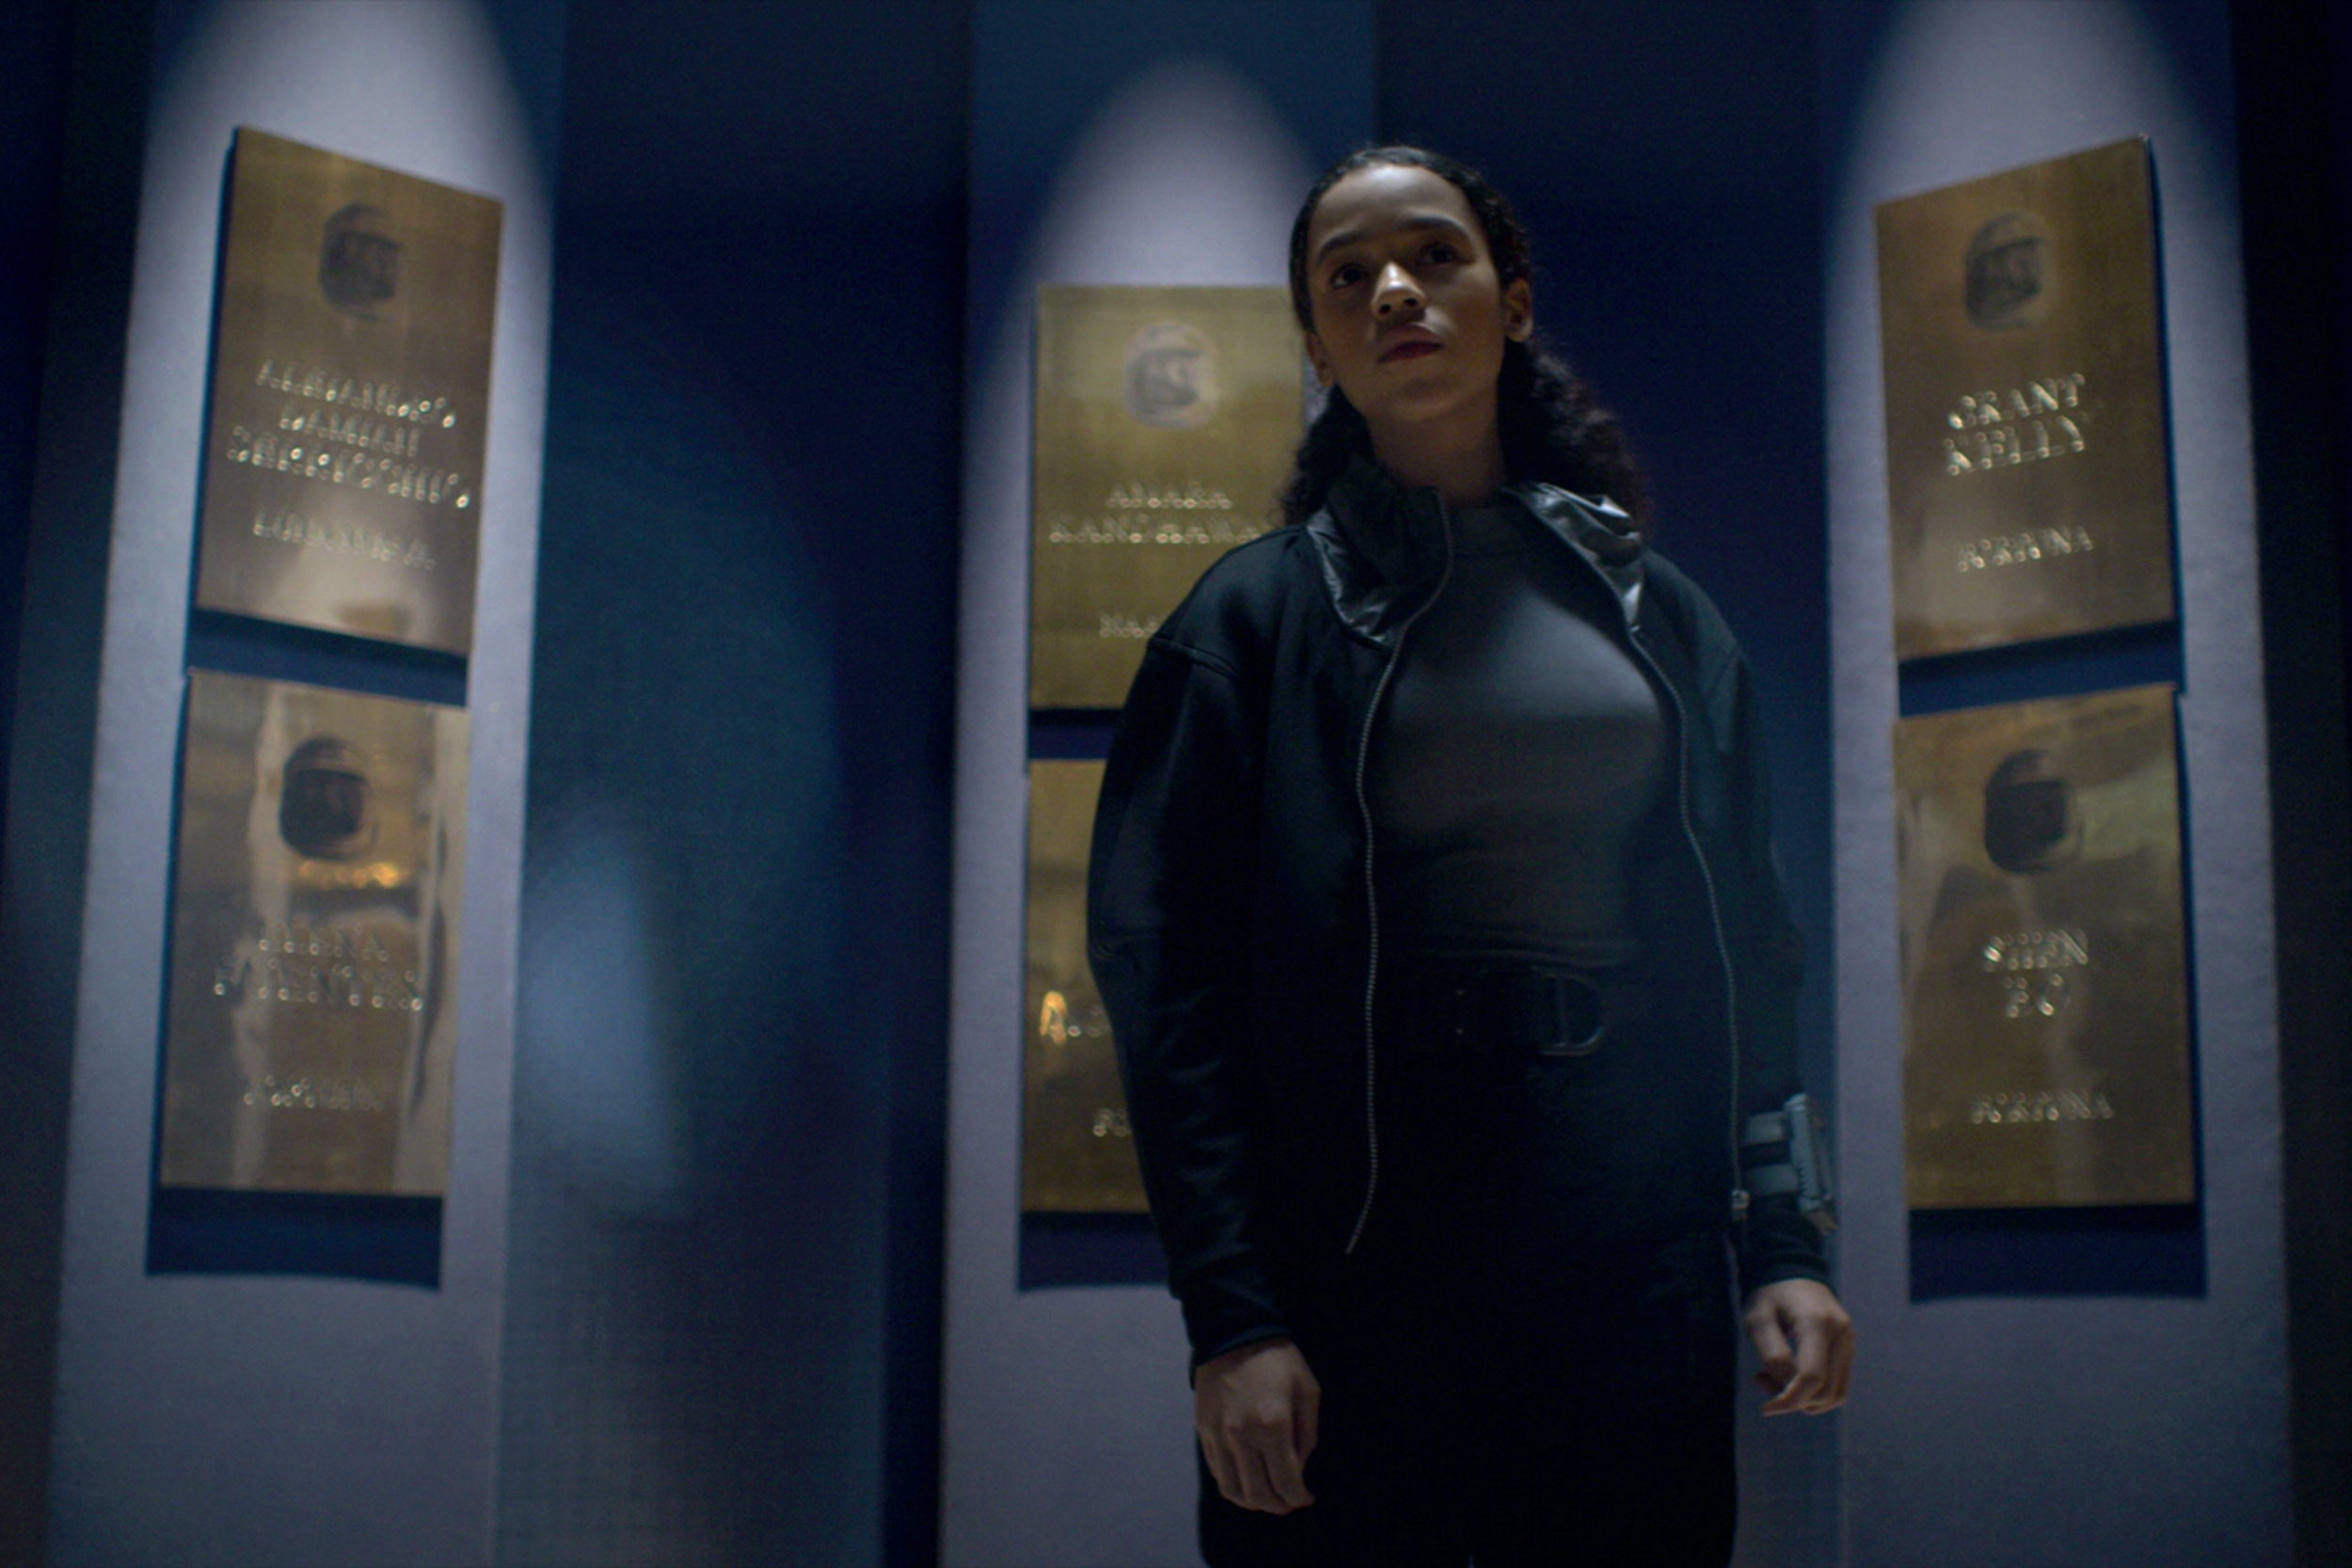 Netflix S Lost In Space Season 2 Uses Strong Female Characters